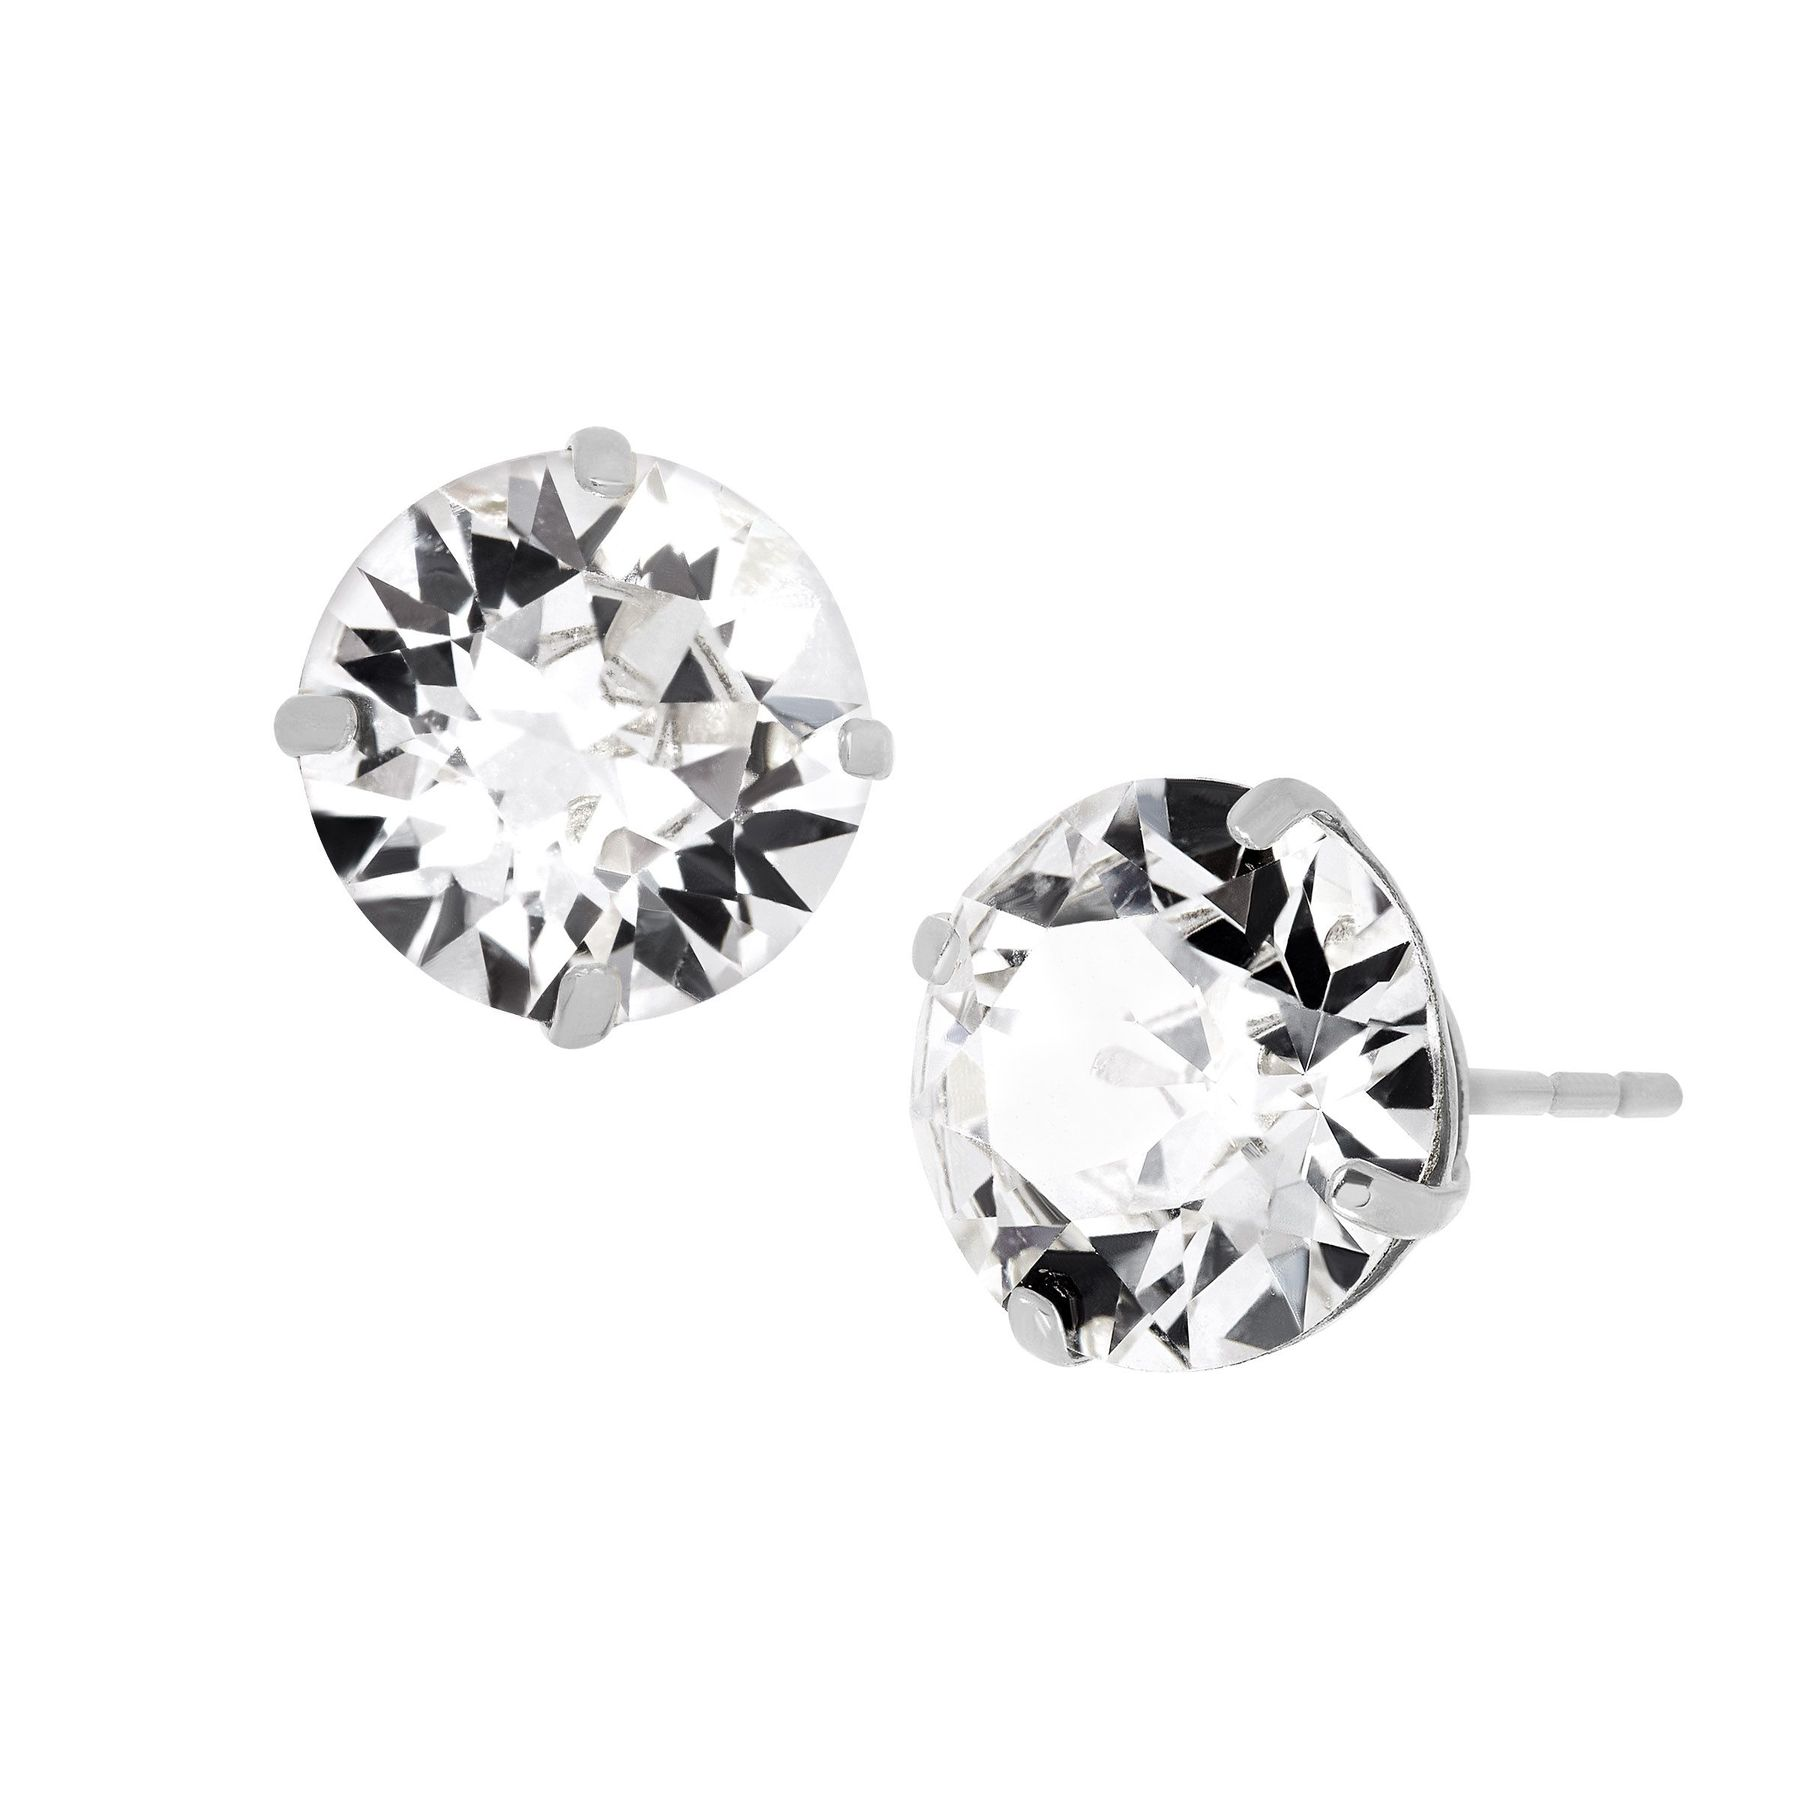 8 Mm Stud Earrings With Swarovski Crystals